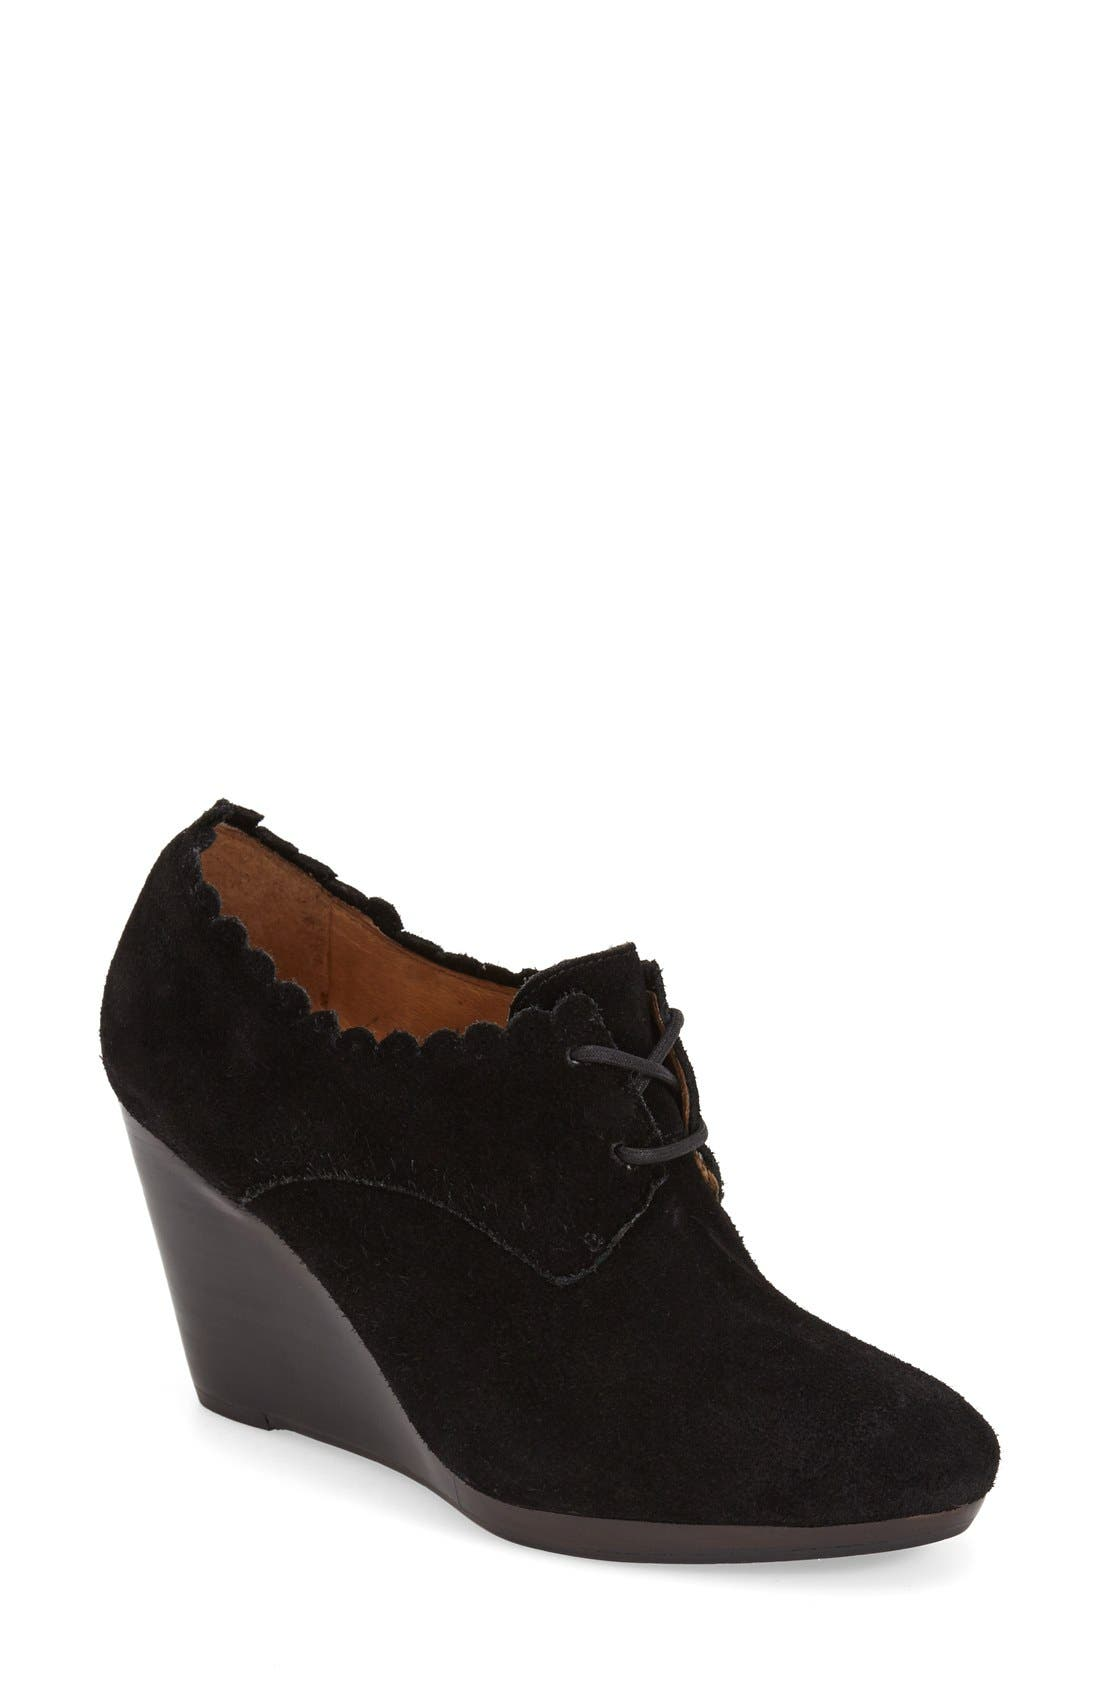 Alternate Image 1 Selected - Jack Rogers 'Olivia' Wedge Bootie (Women)